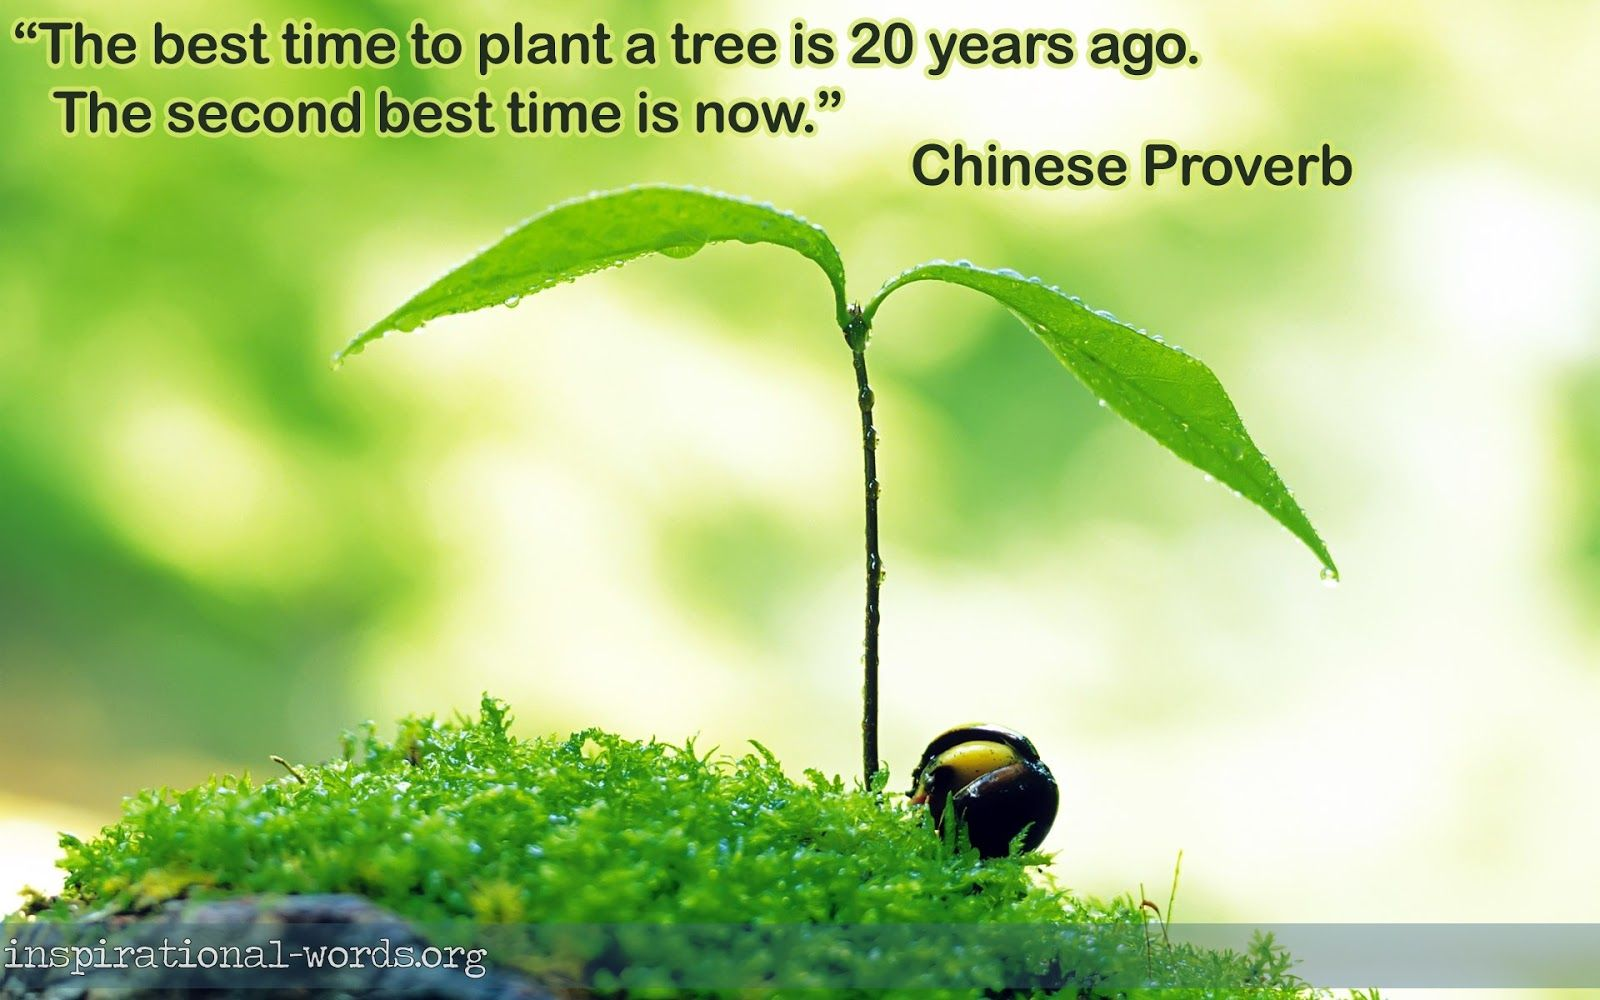 The best time to plant a tree - post  Plants, Thought provoking